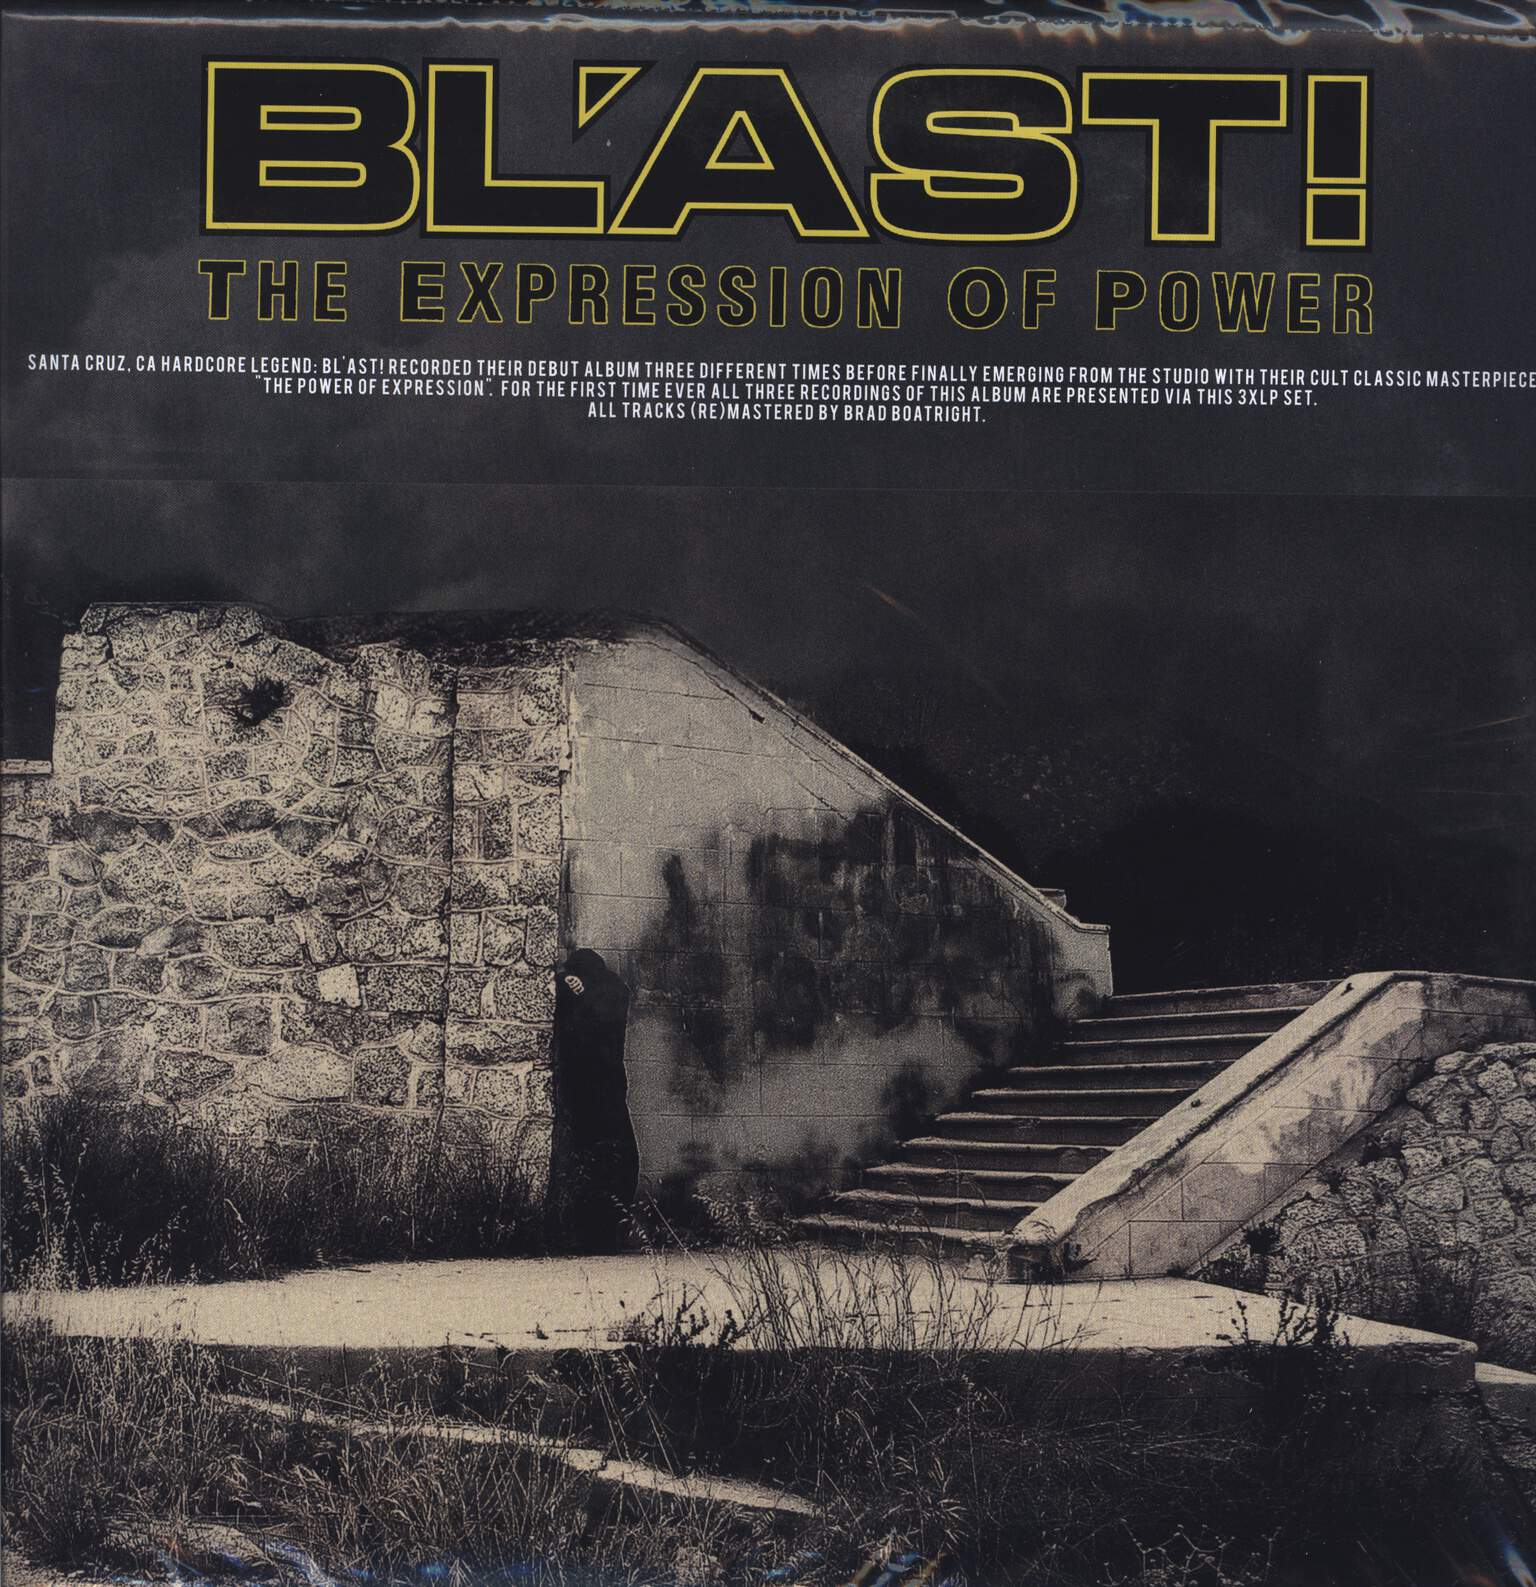 Bl'ast: The Expression Of Power, LP (Vinyl)